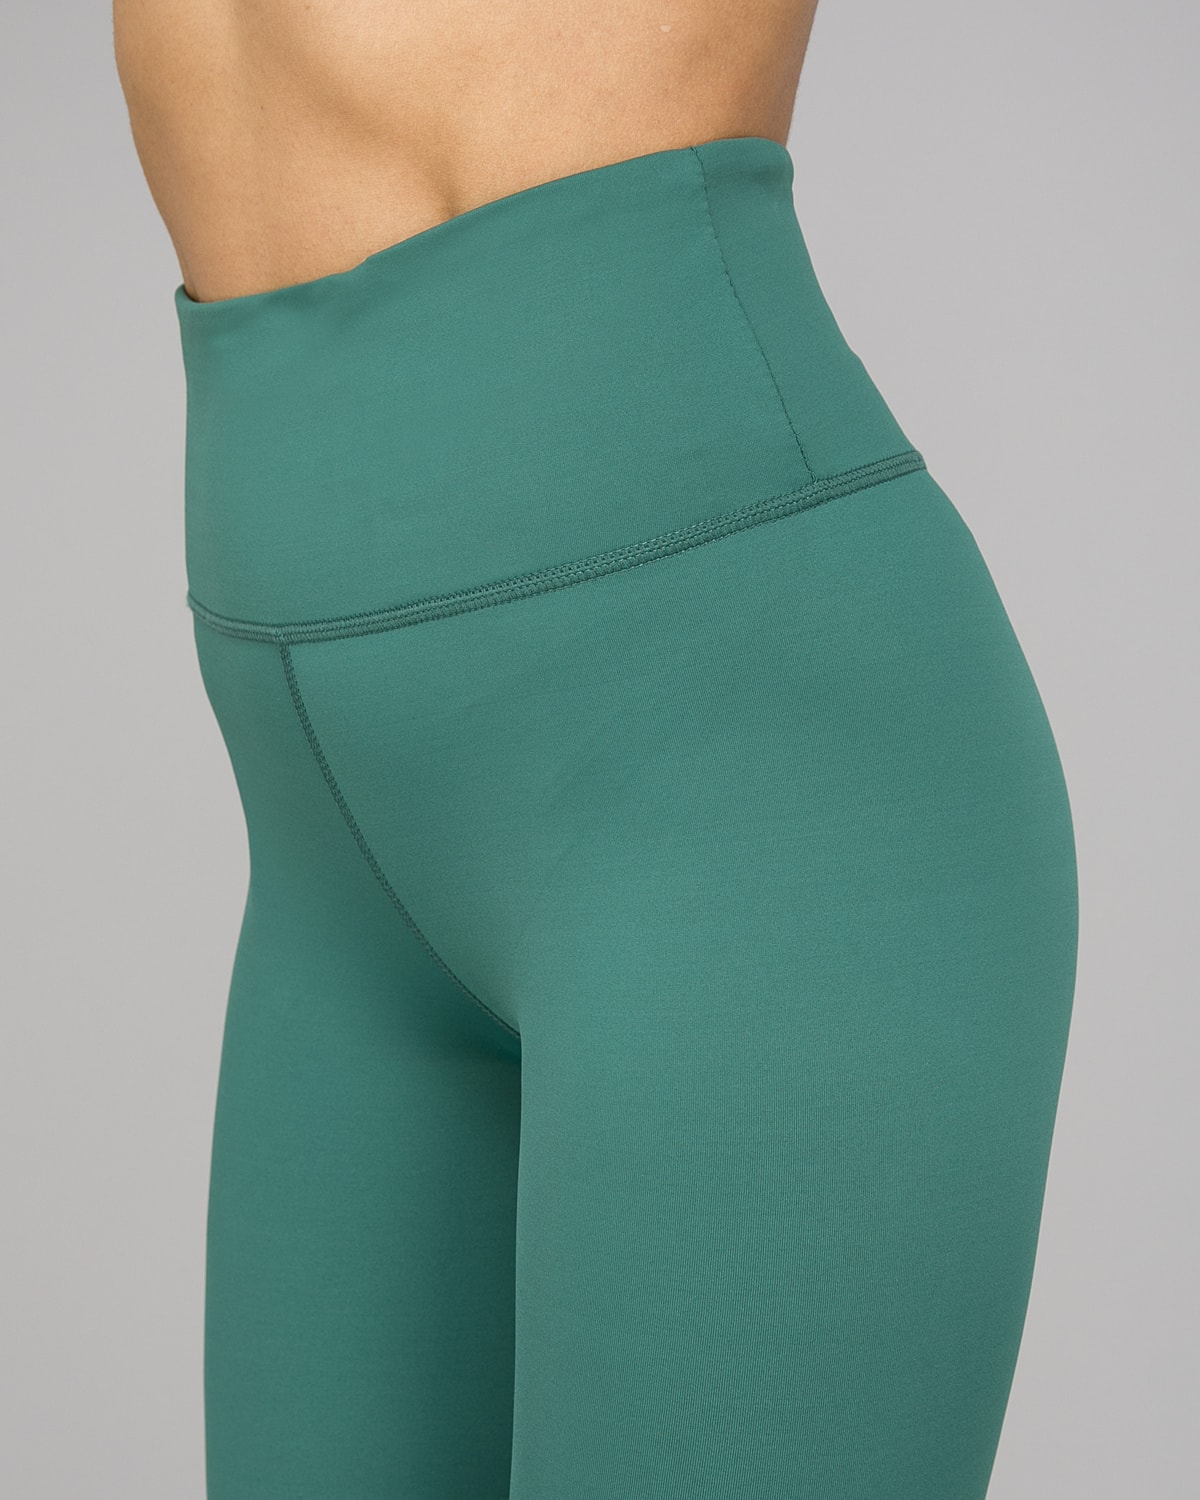 Workout Empire – With Confidence Shape Leggings – Emerald Green10